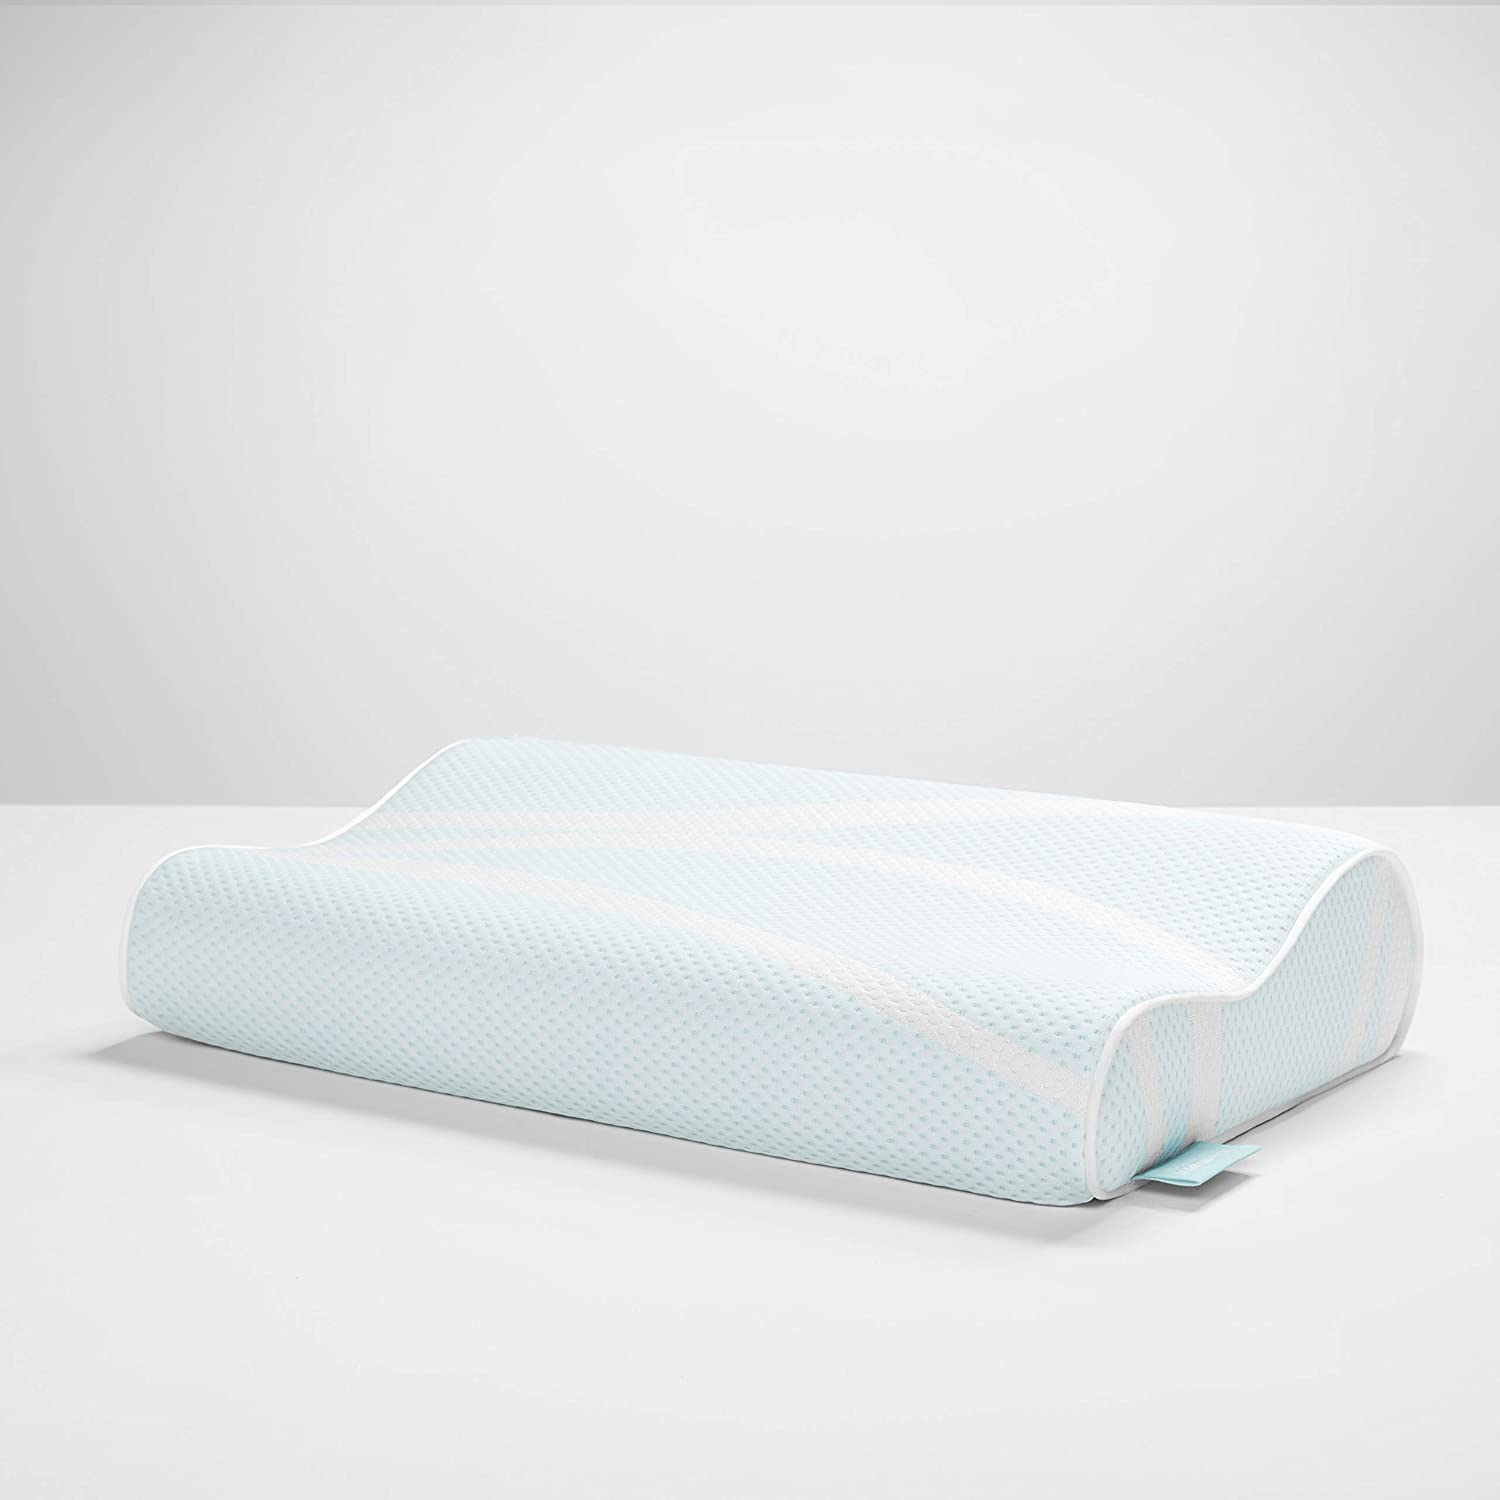 TEMPUR-PEDIC TEMPUR-Breeze Neck (Standard Medium) Pillow, White